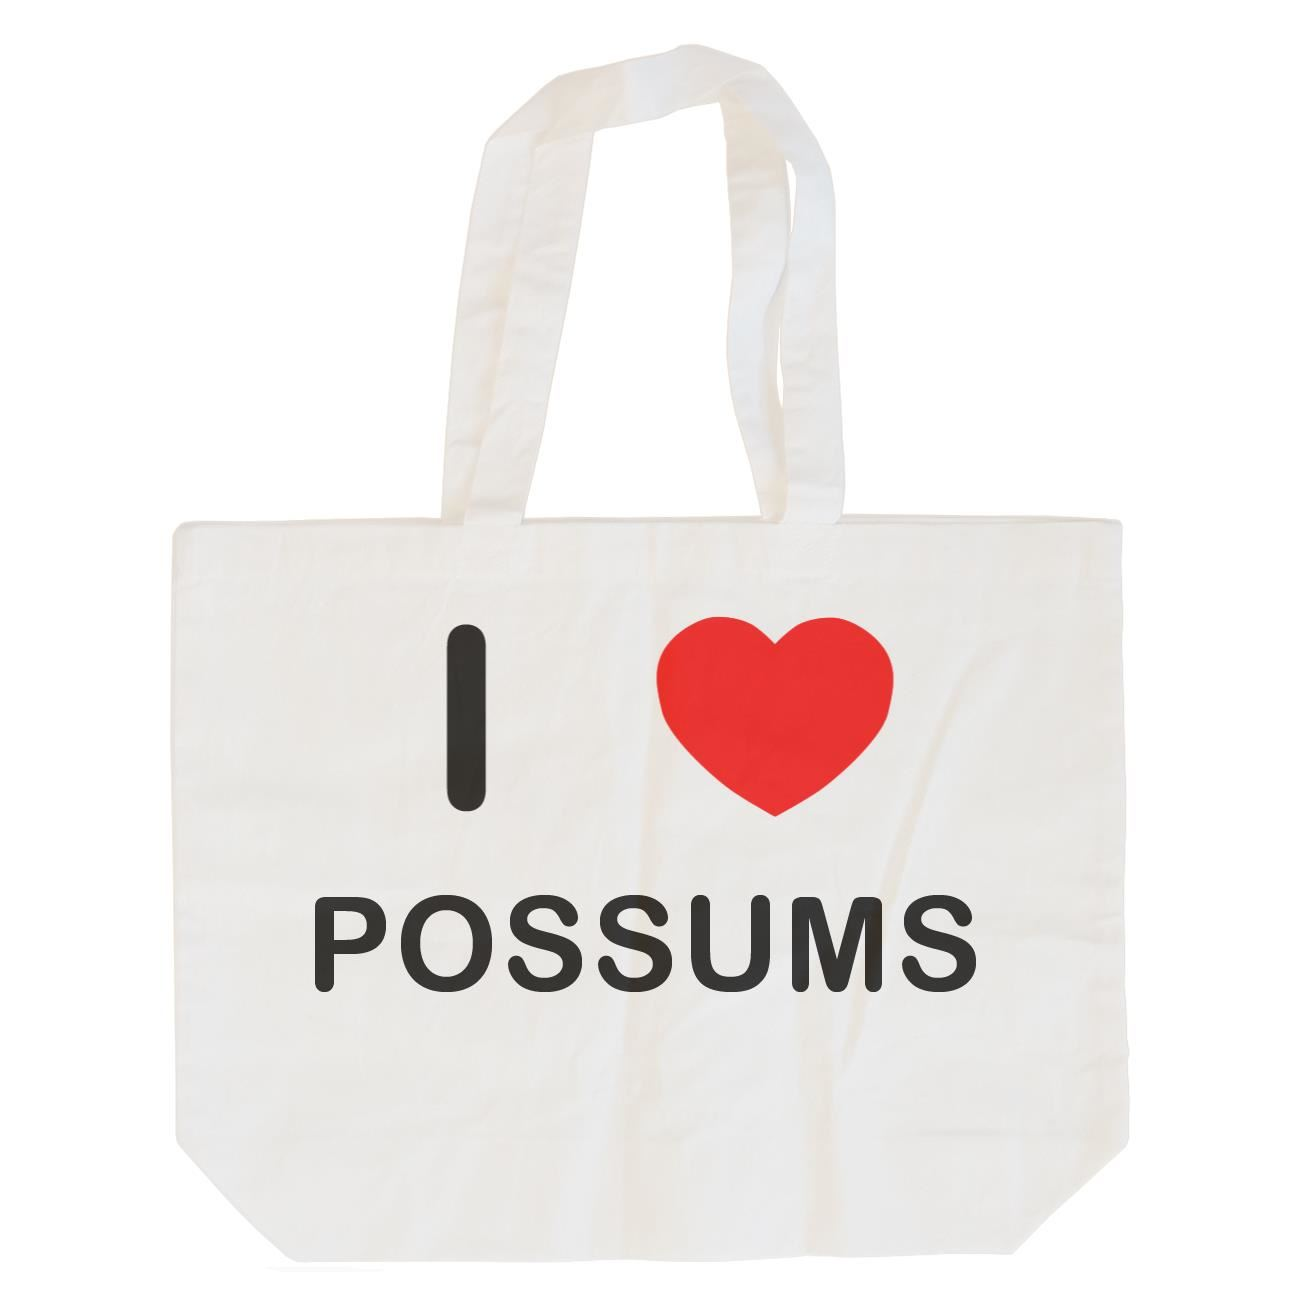 I Love Possums - Cotton Bag | Size choice Tote, Shopper or Sling